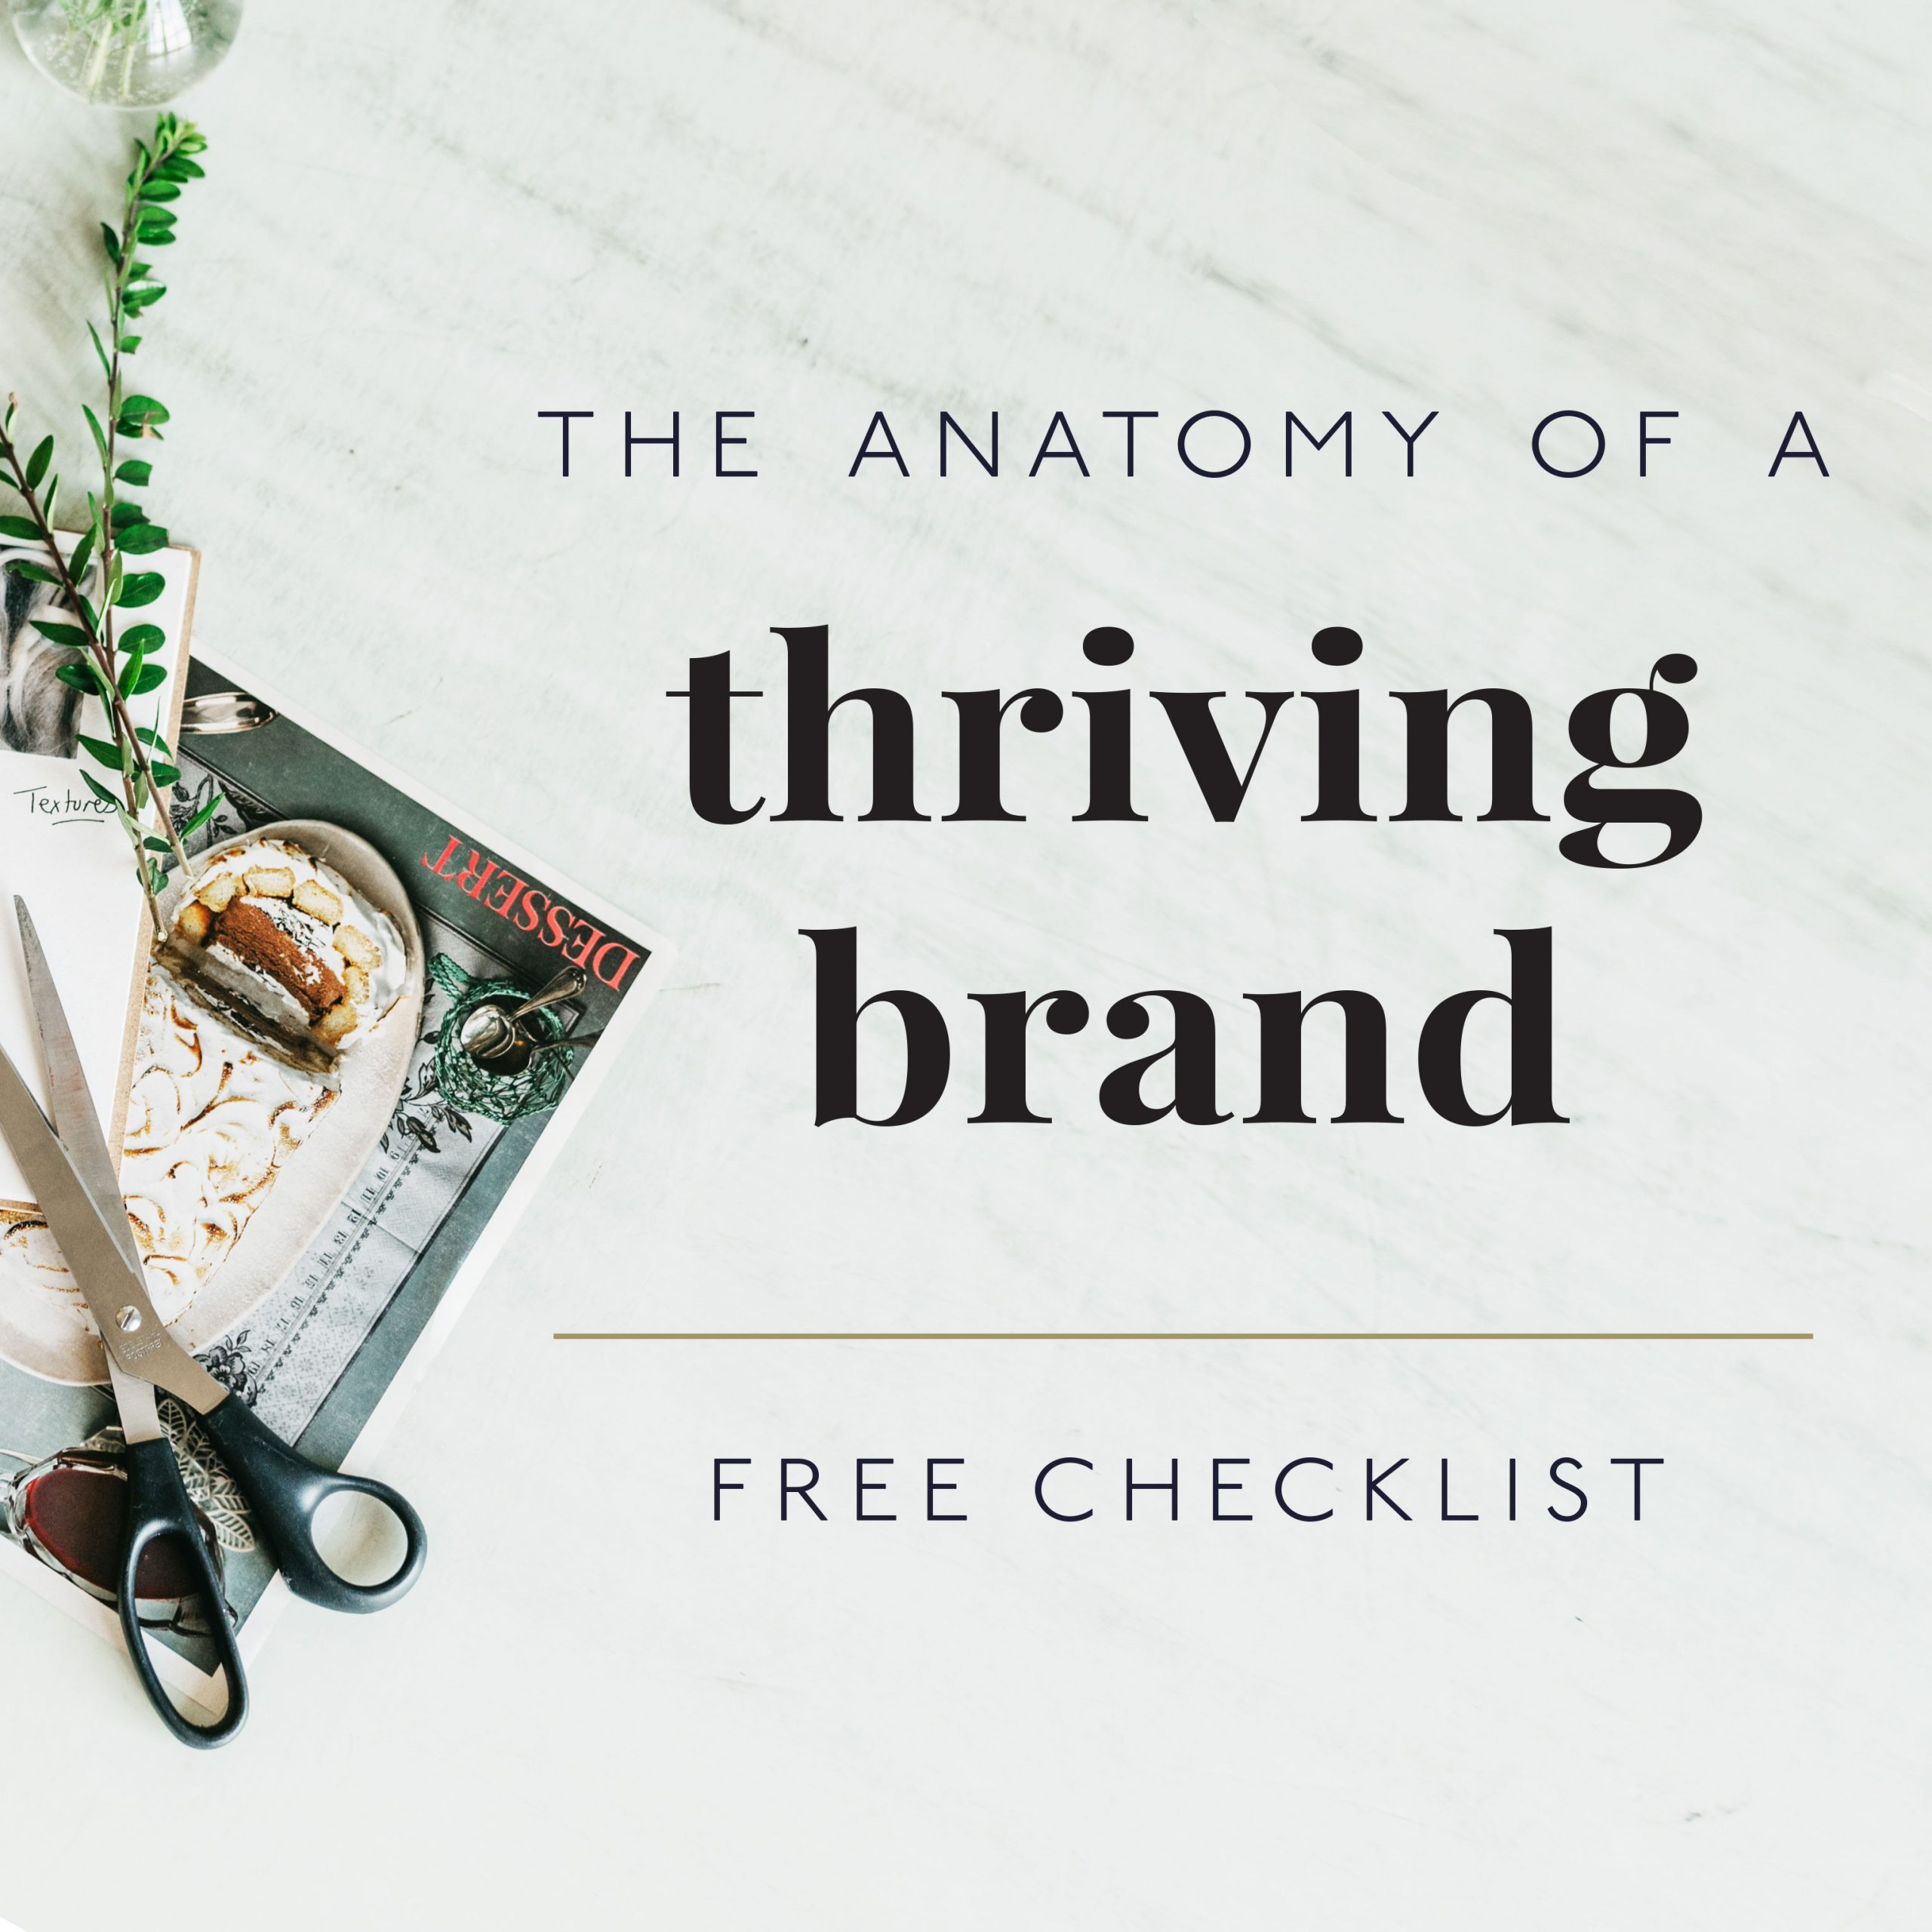 the anatomy of a thriving brand